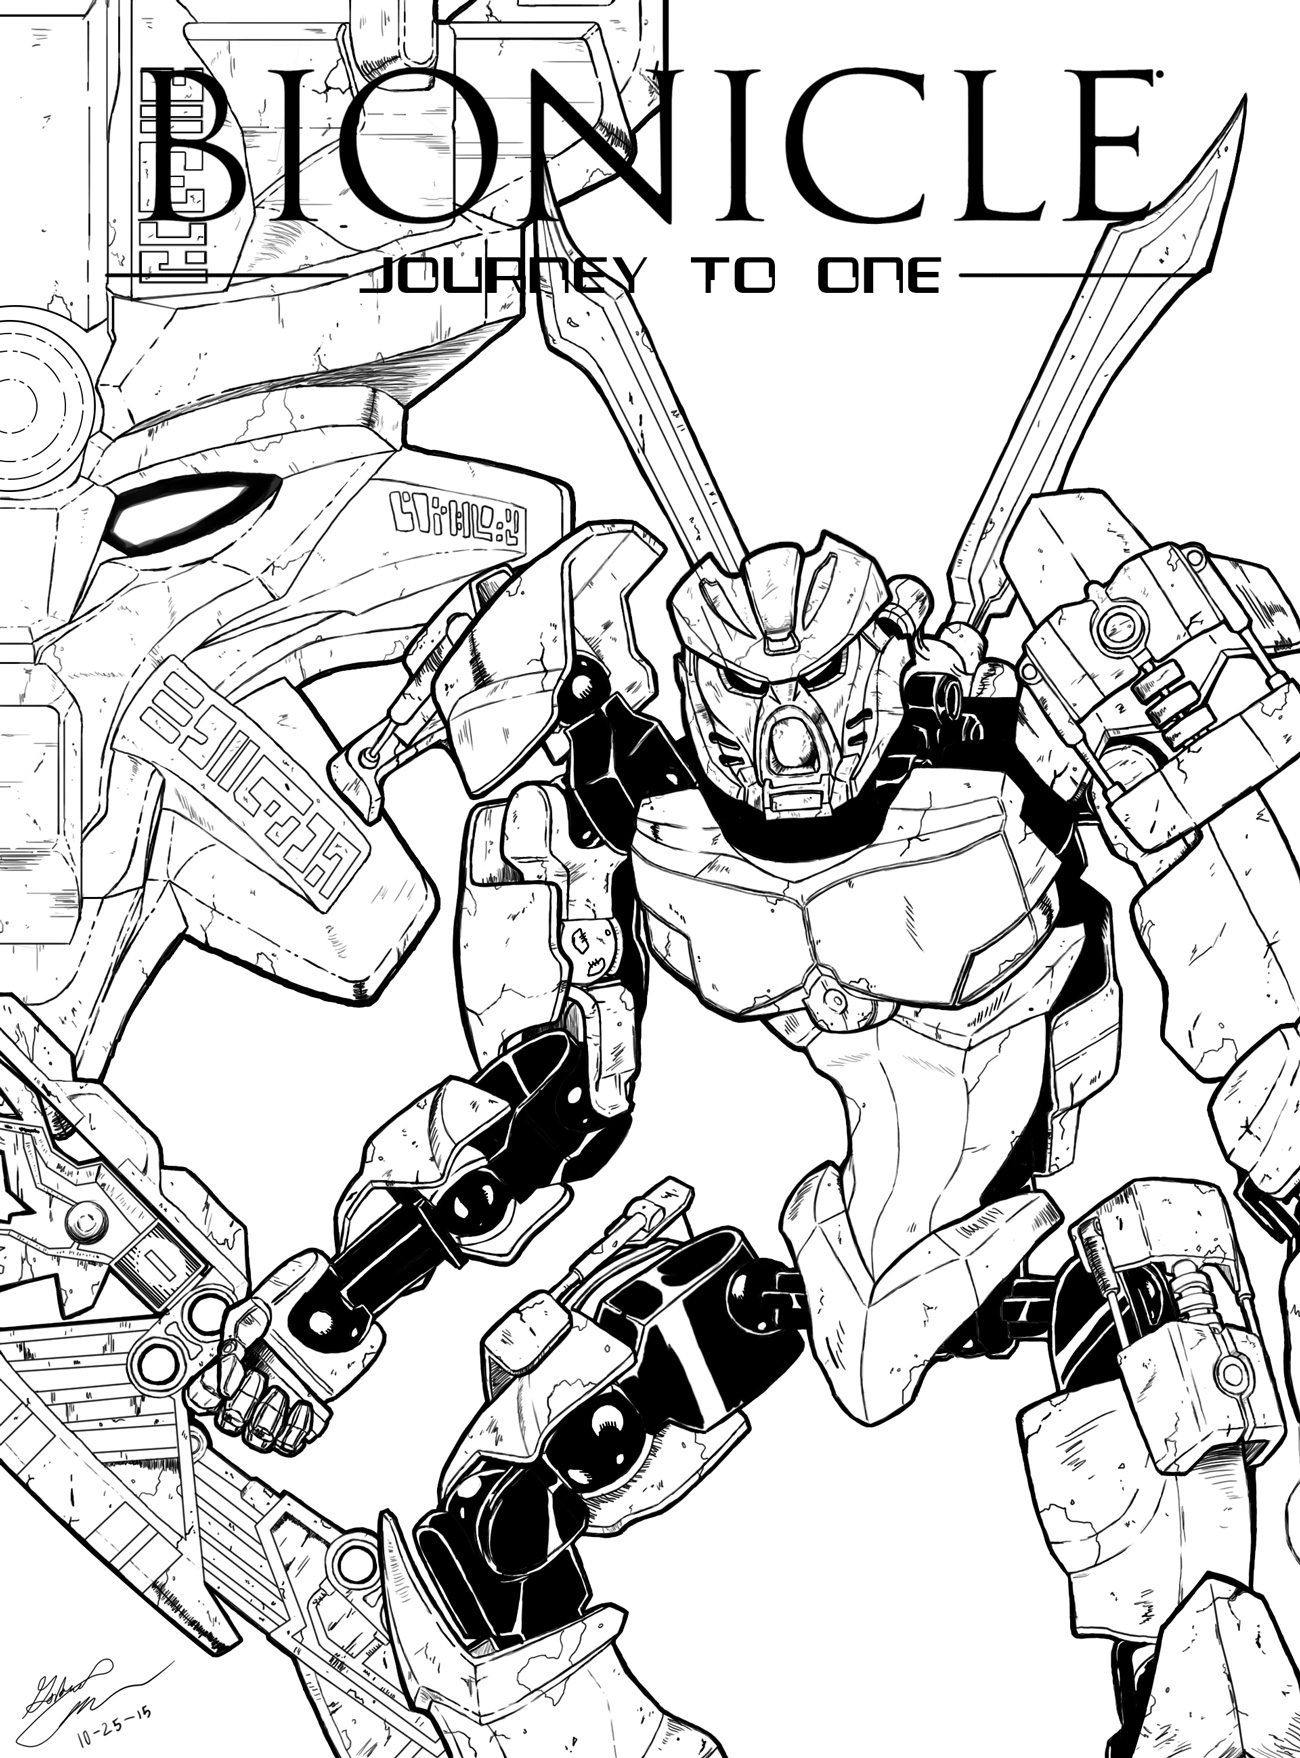 Lovely Lego Bionicle Coloring Pages To Print Pictures Inspiration Jto Posterbw By Tohkann D9exw9t